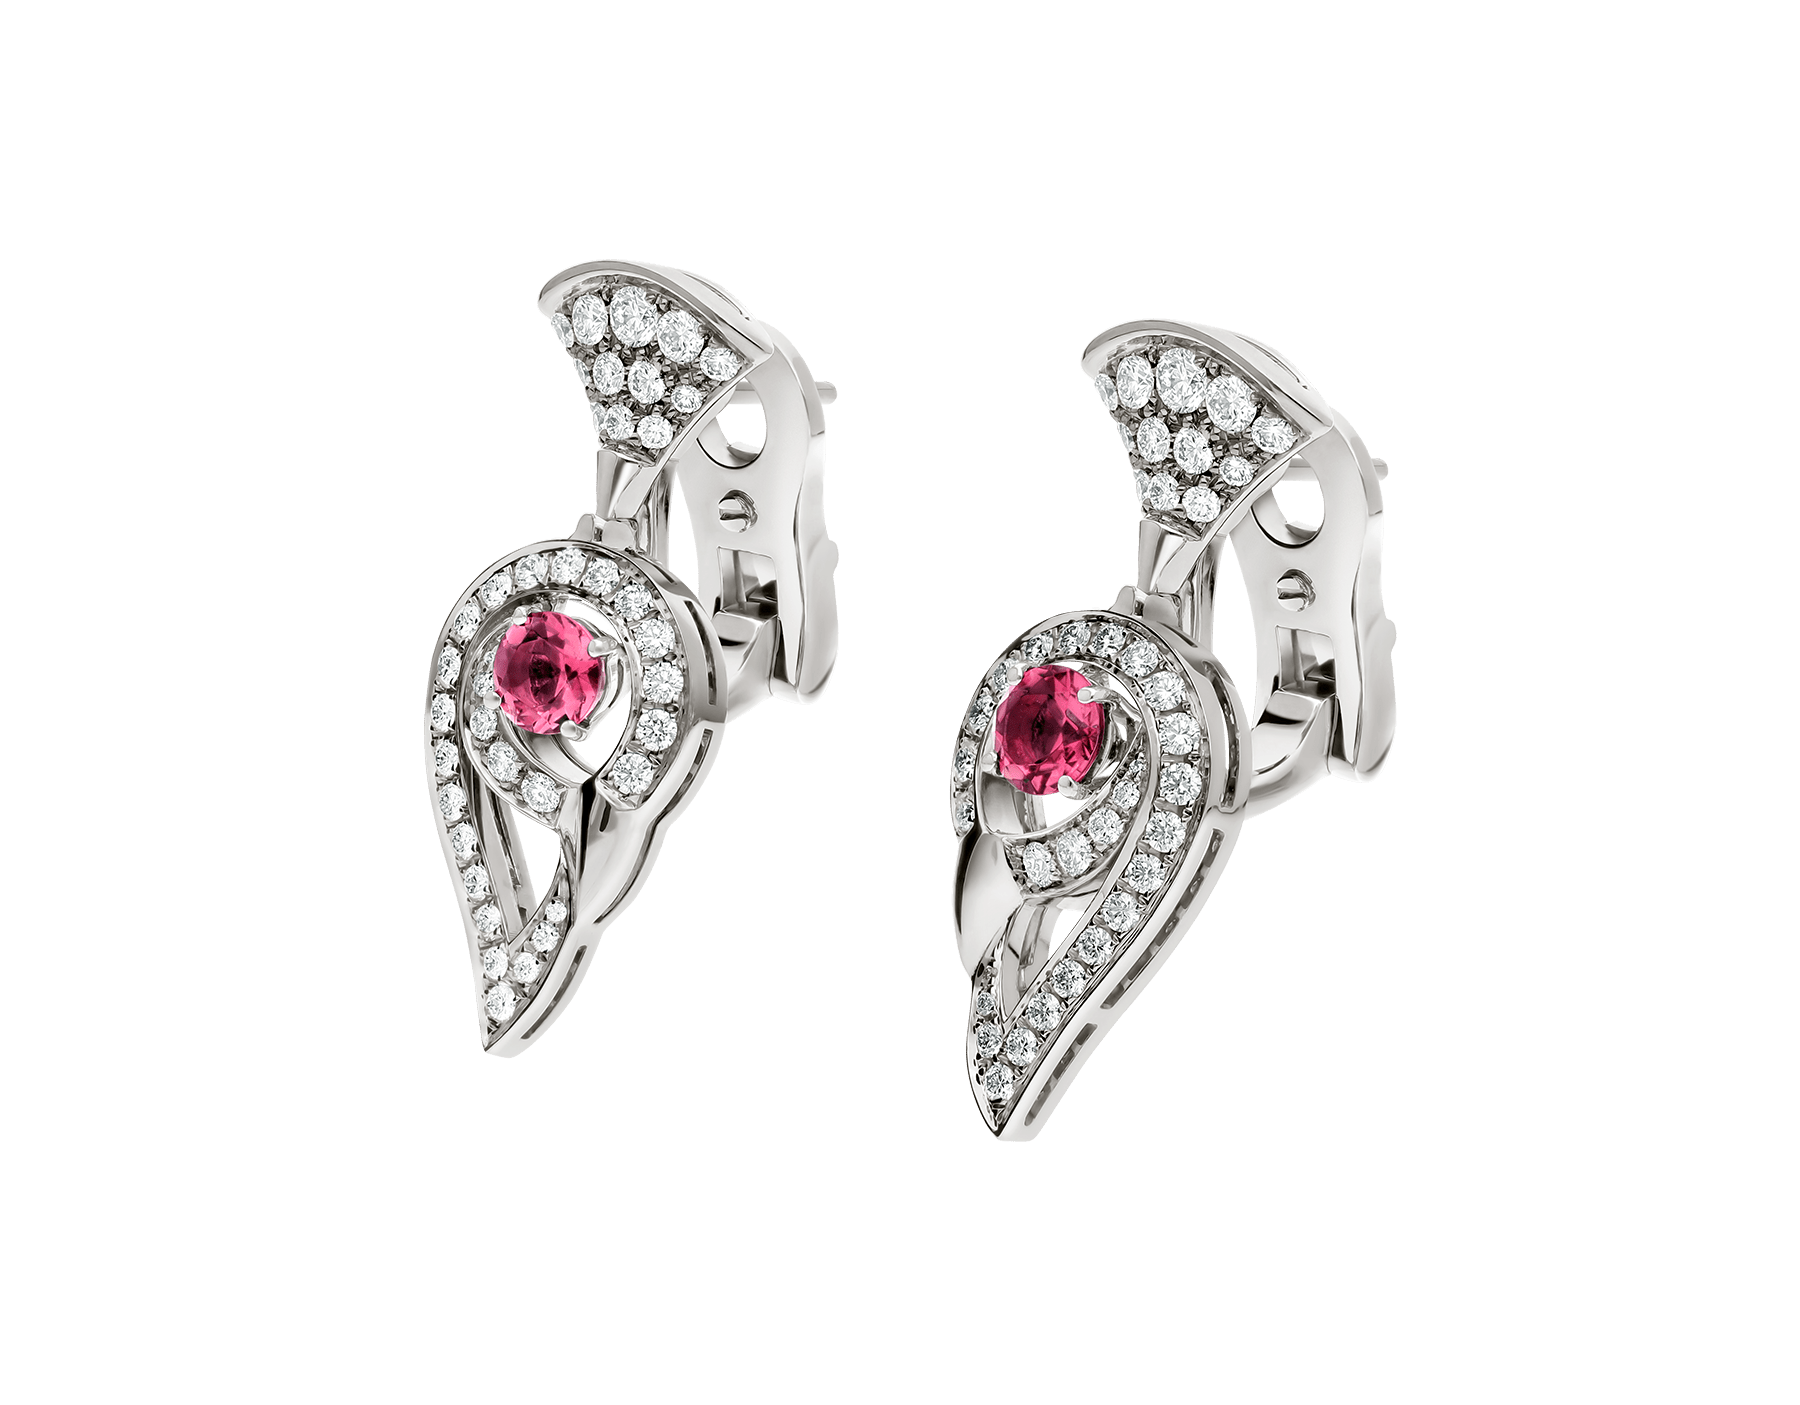 DIVAS' DREAM earrings in 18 kt white gold set with pink rubellite (0.75 ct) and pavé diamonds (1.10 ct). 354082 image 2